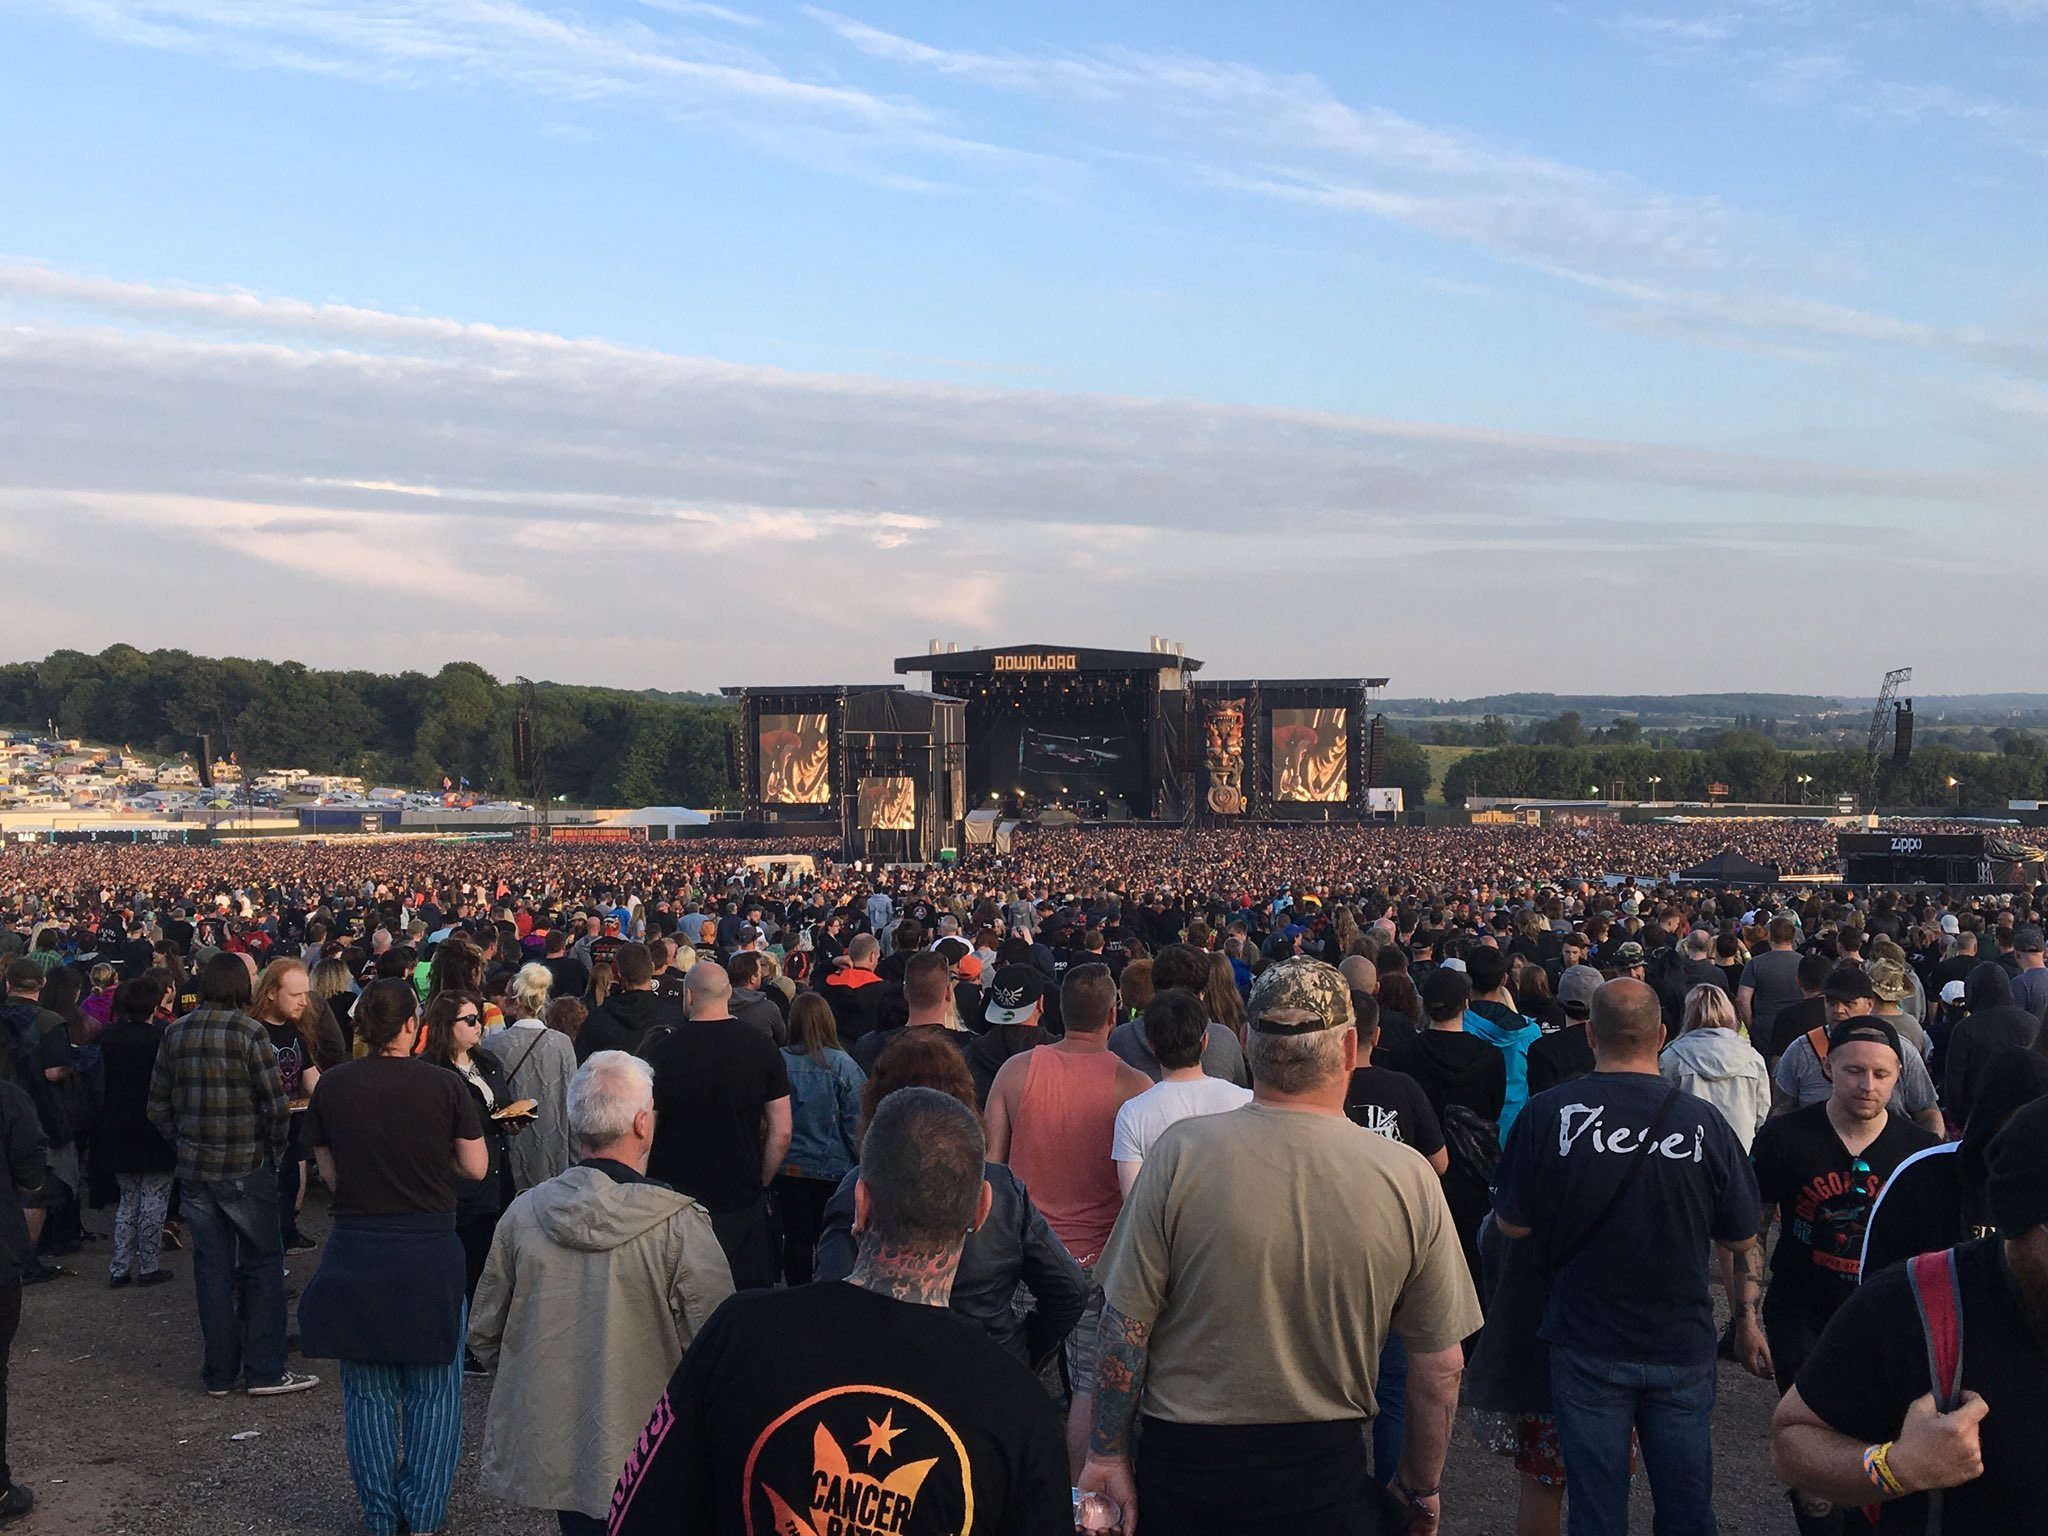 Not a bad turn out for @gunsnroses at @DownloadFest  #DL2018 #Download2018 #gunsnroses https://t.co/2Cm3DwFWap